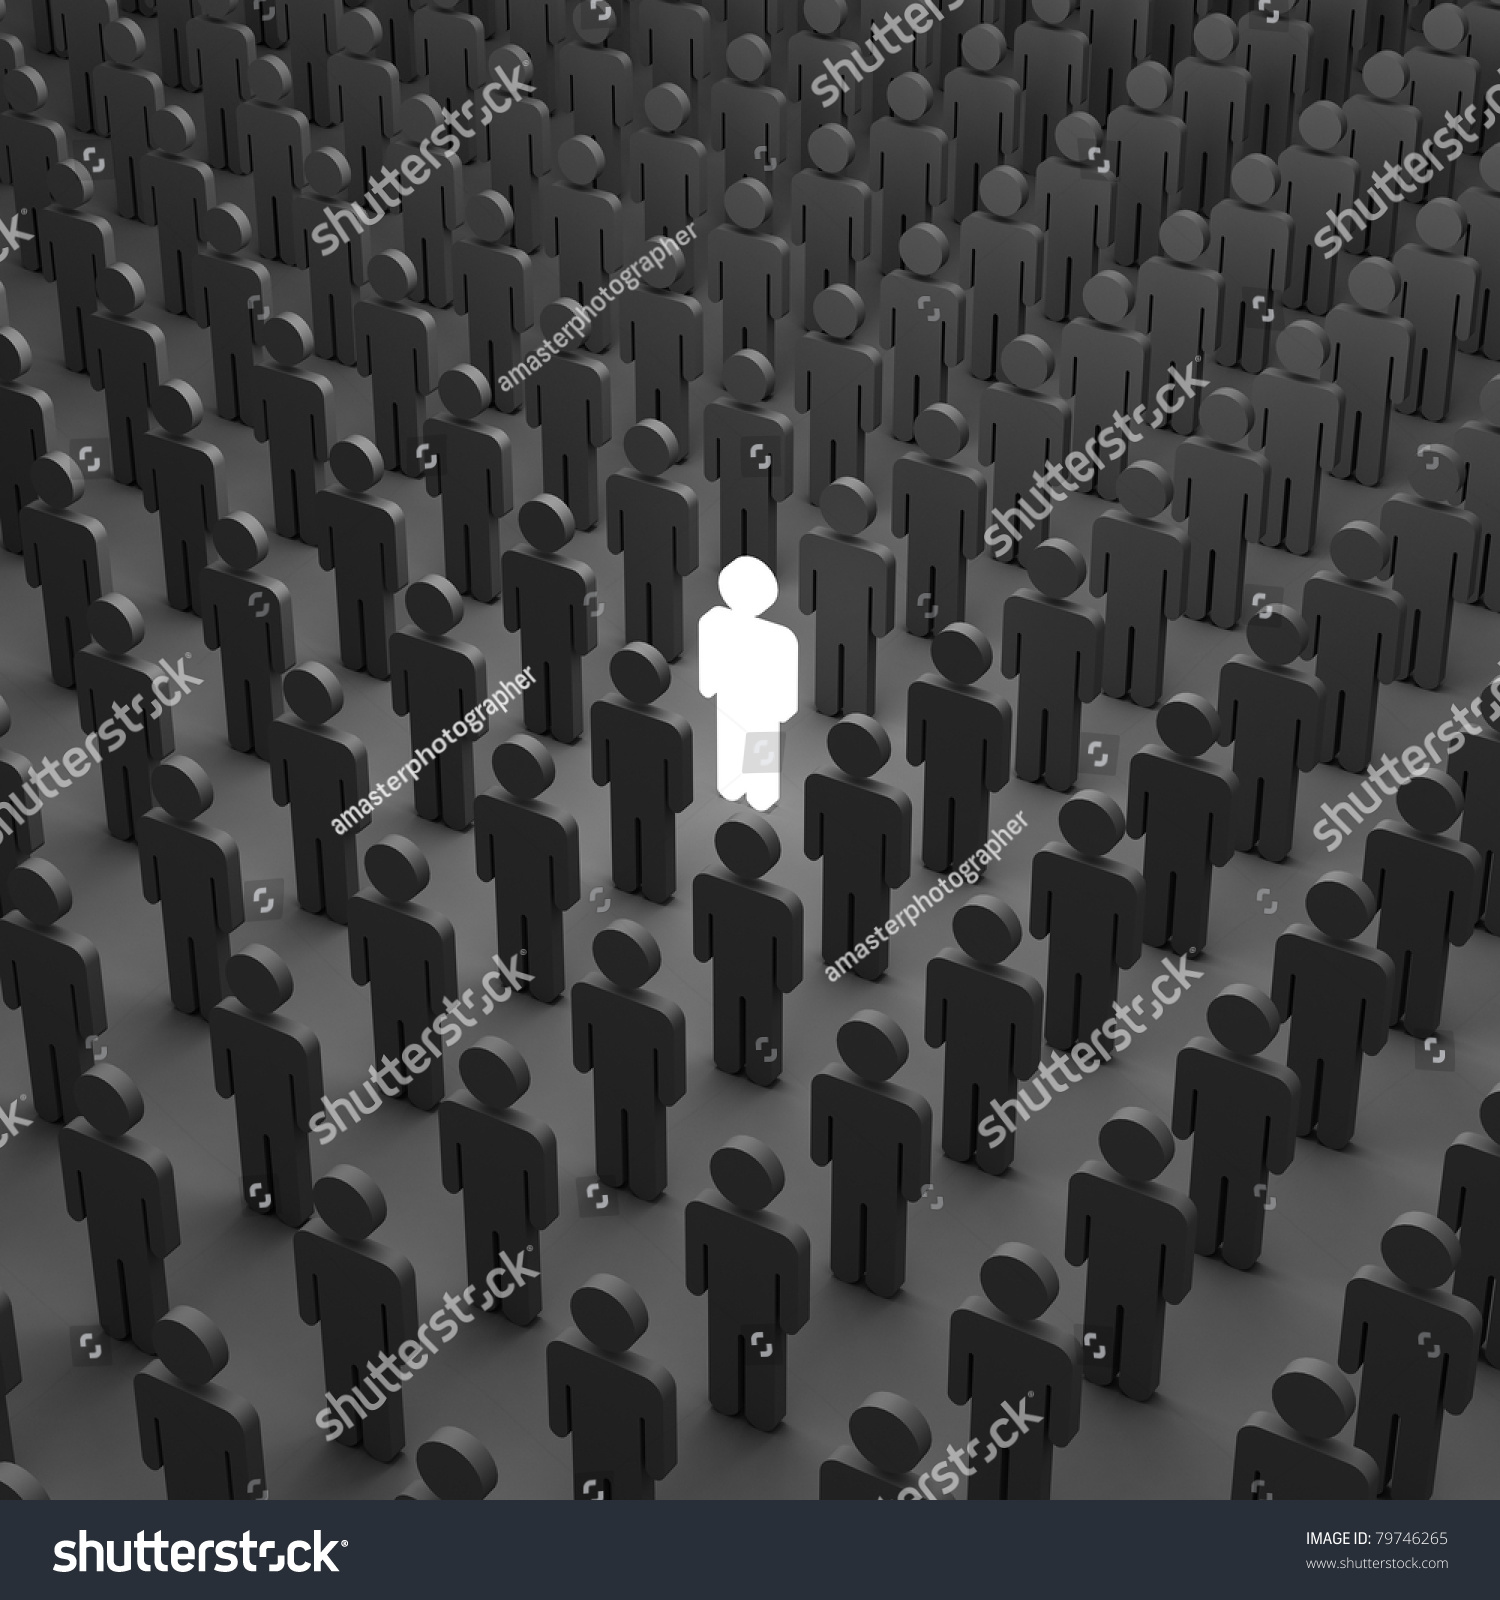 One Person Standing Out In A Crowd Stand Out Crowd Stock ...